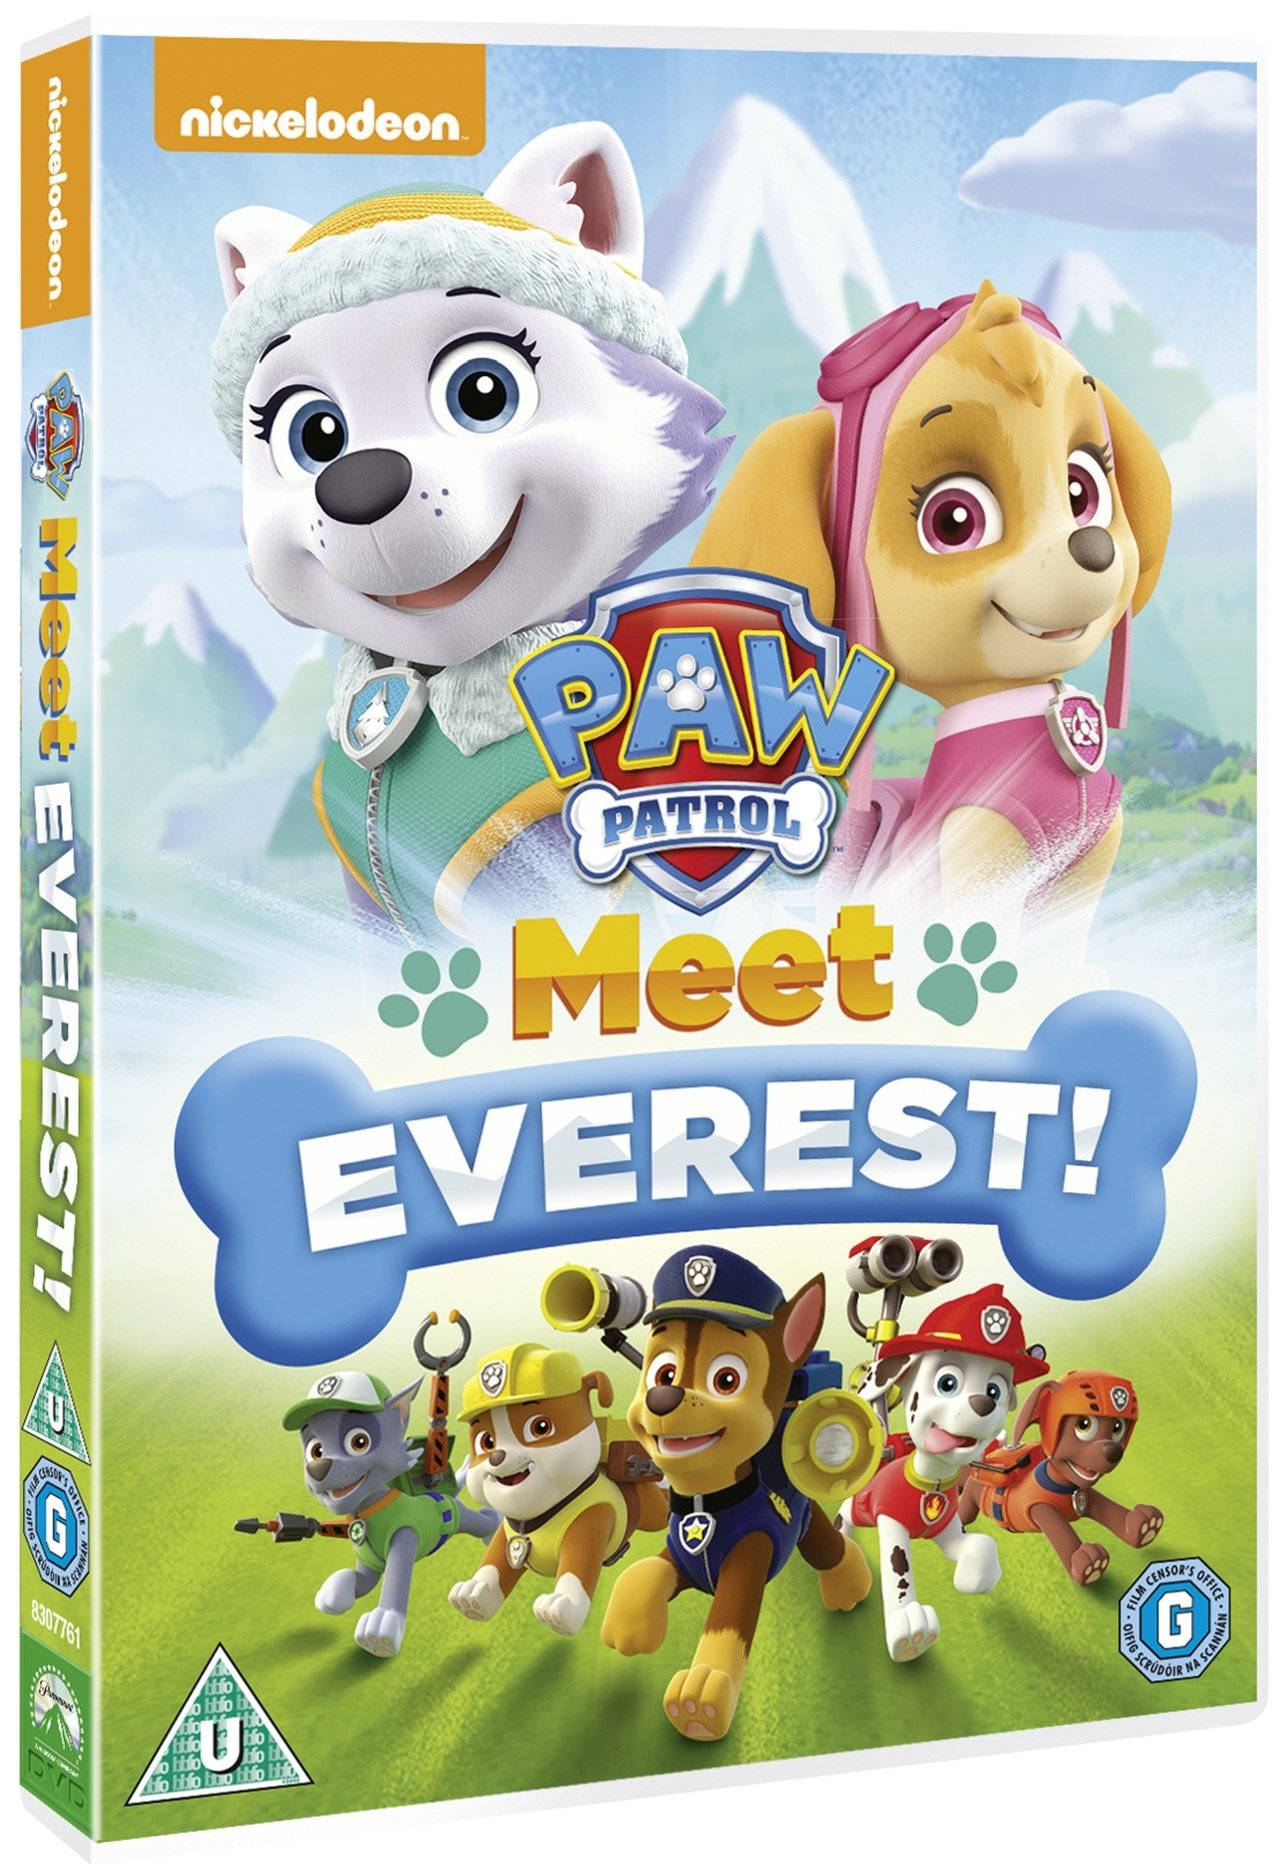 Paw Patrol: Meet Everest! - 2